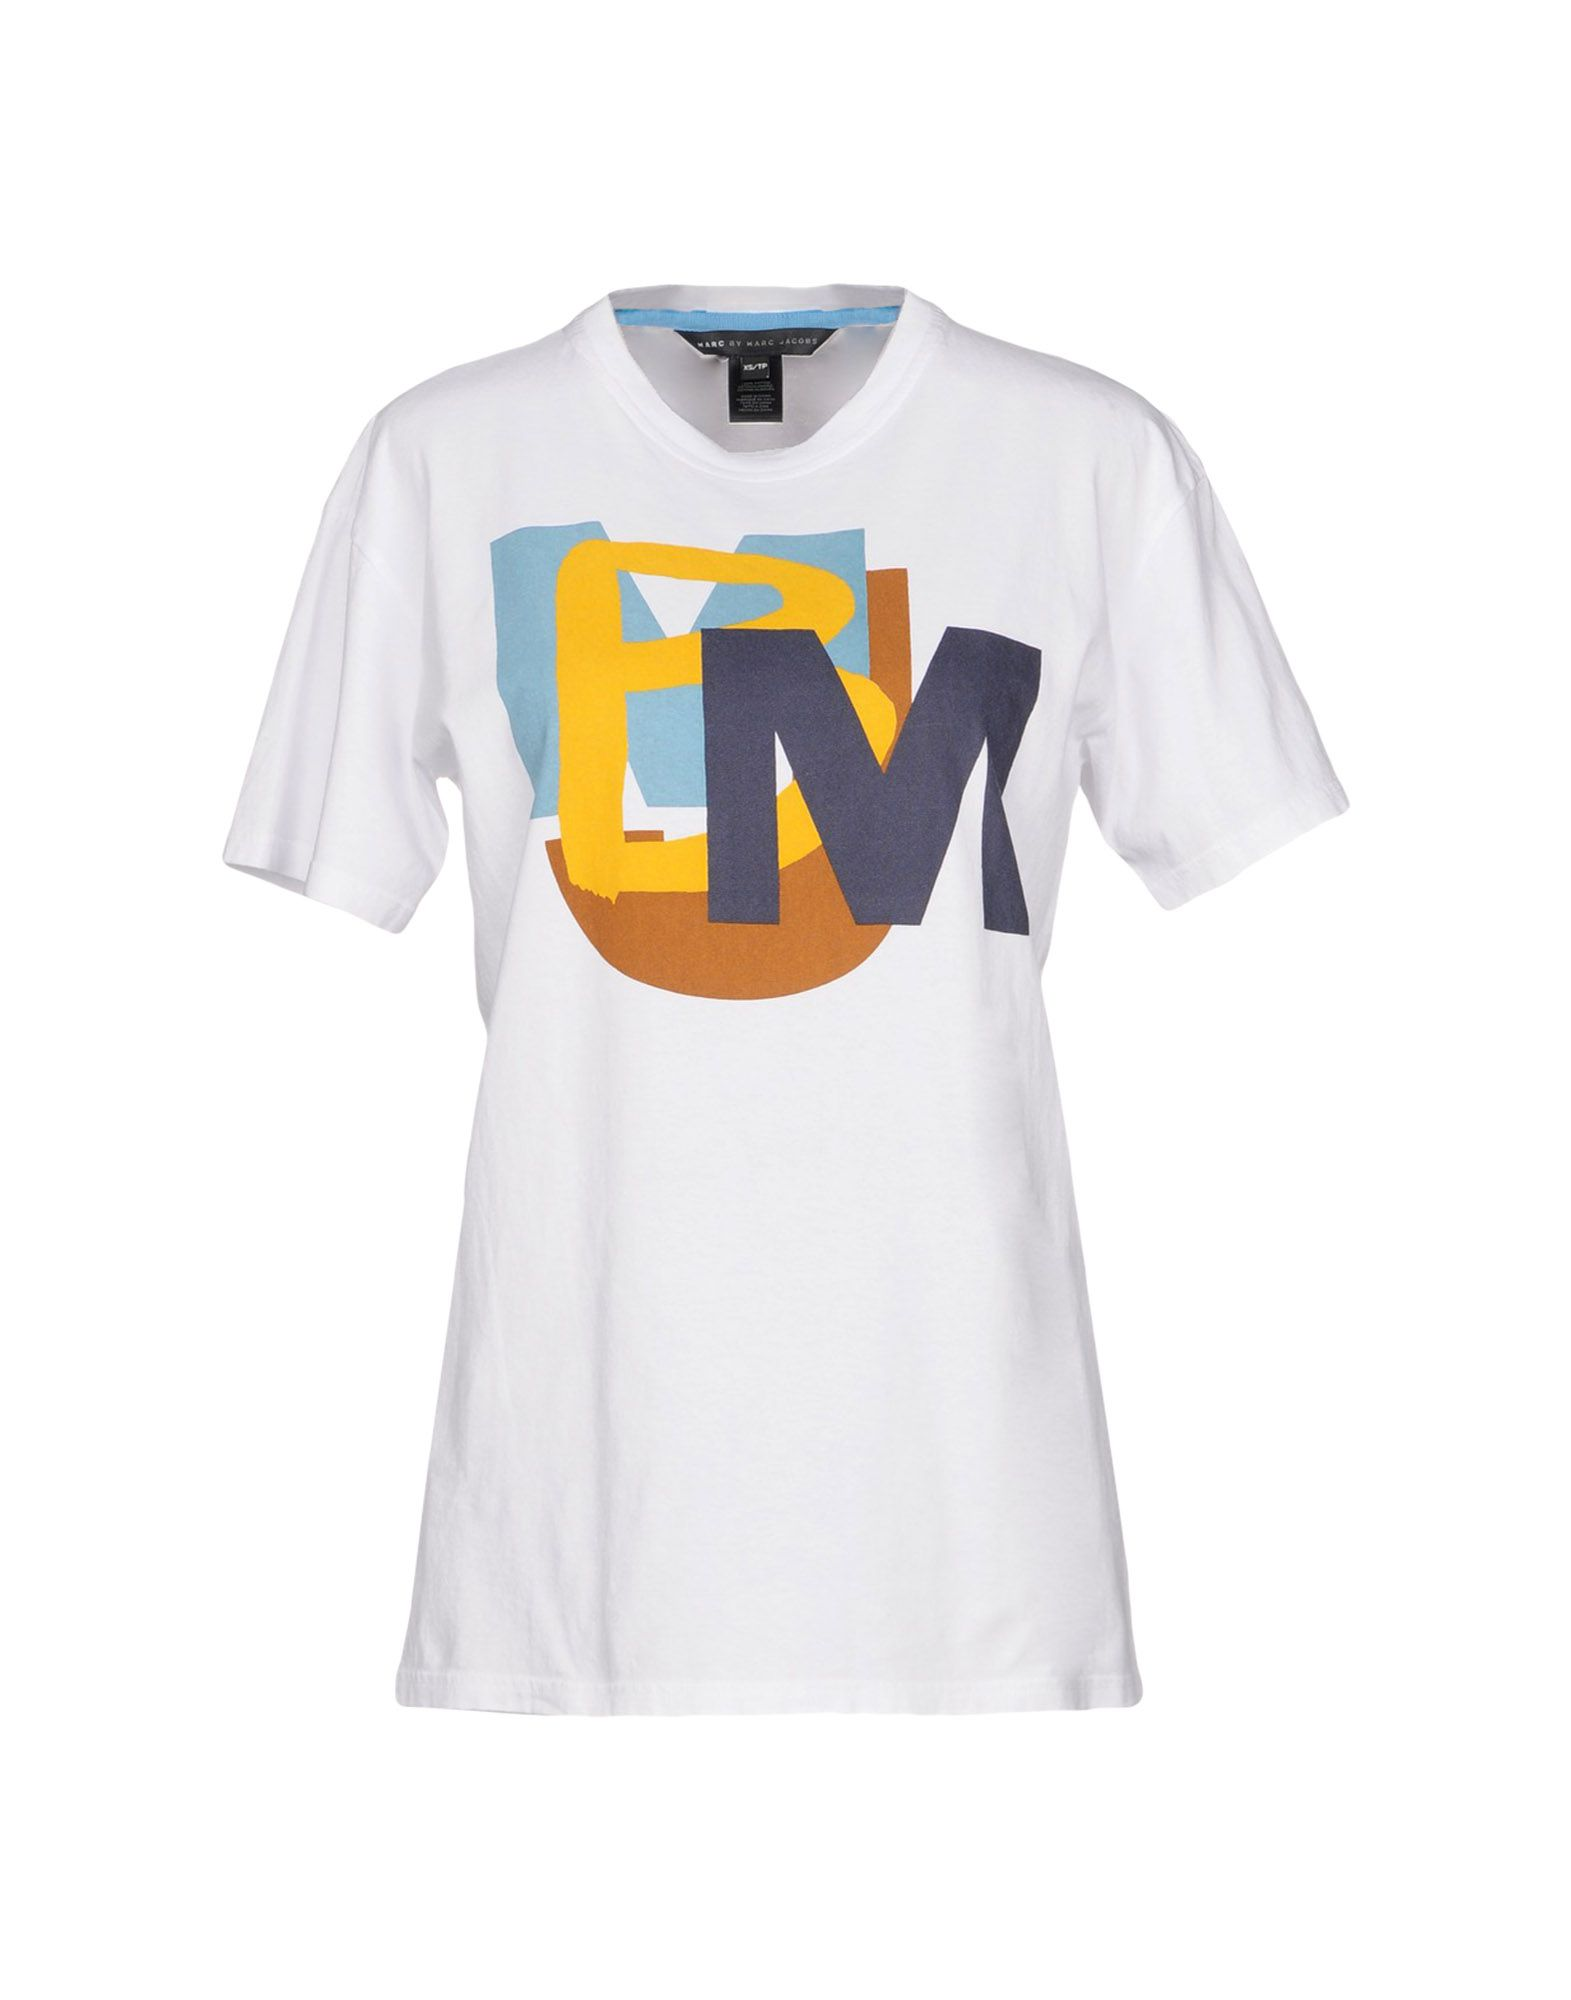 MARC BY MARC JACOBS T-Shirt in White